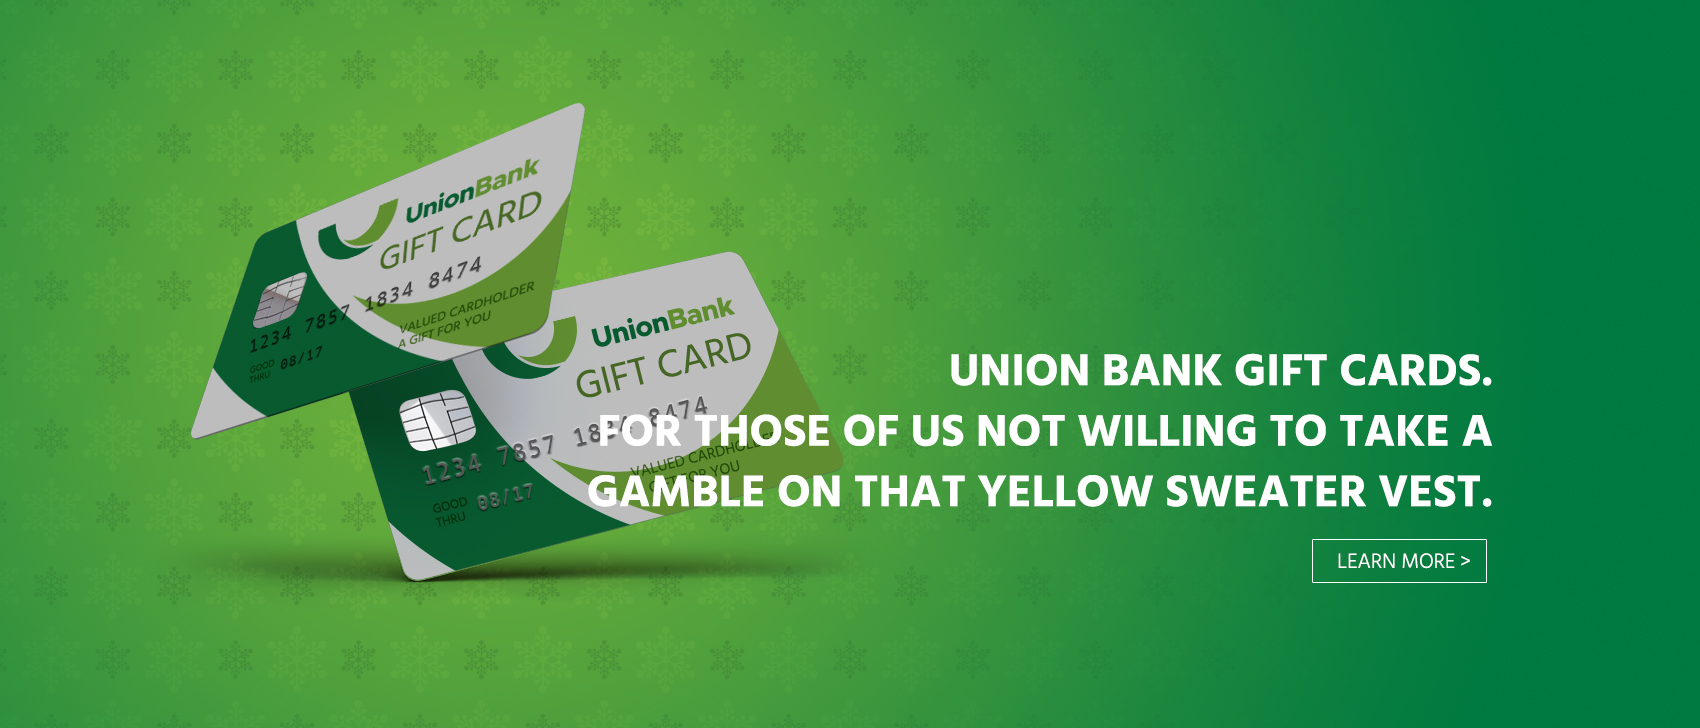 two Union Bank gift cards with text that reads 'Union Bank gift cards. For those of us not willing to take a gamble on that yellow sweater vest.'